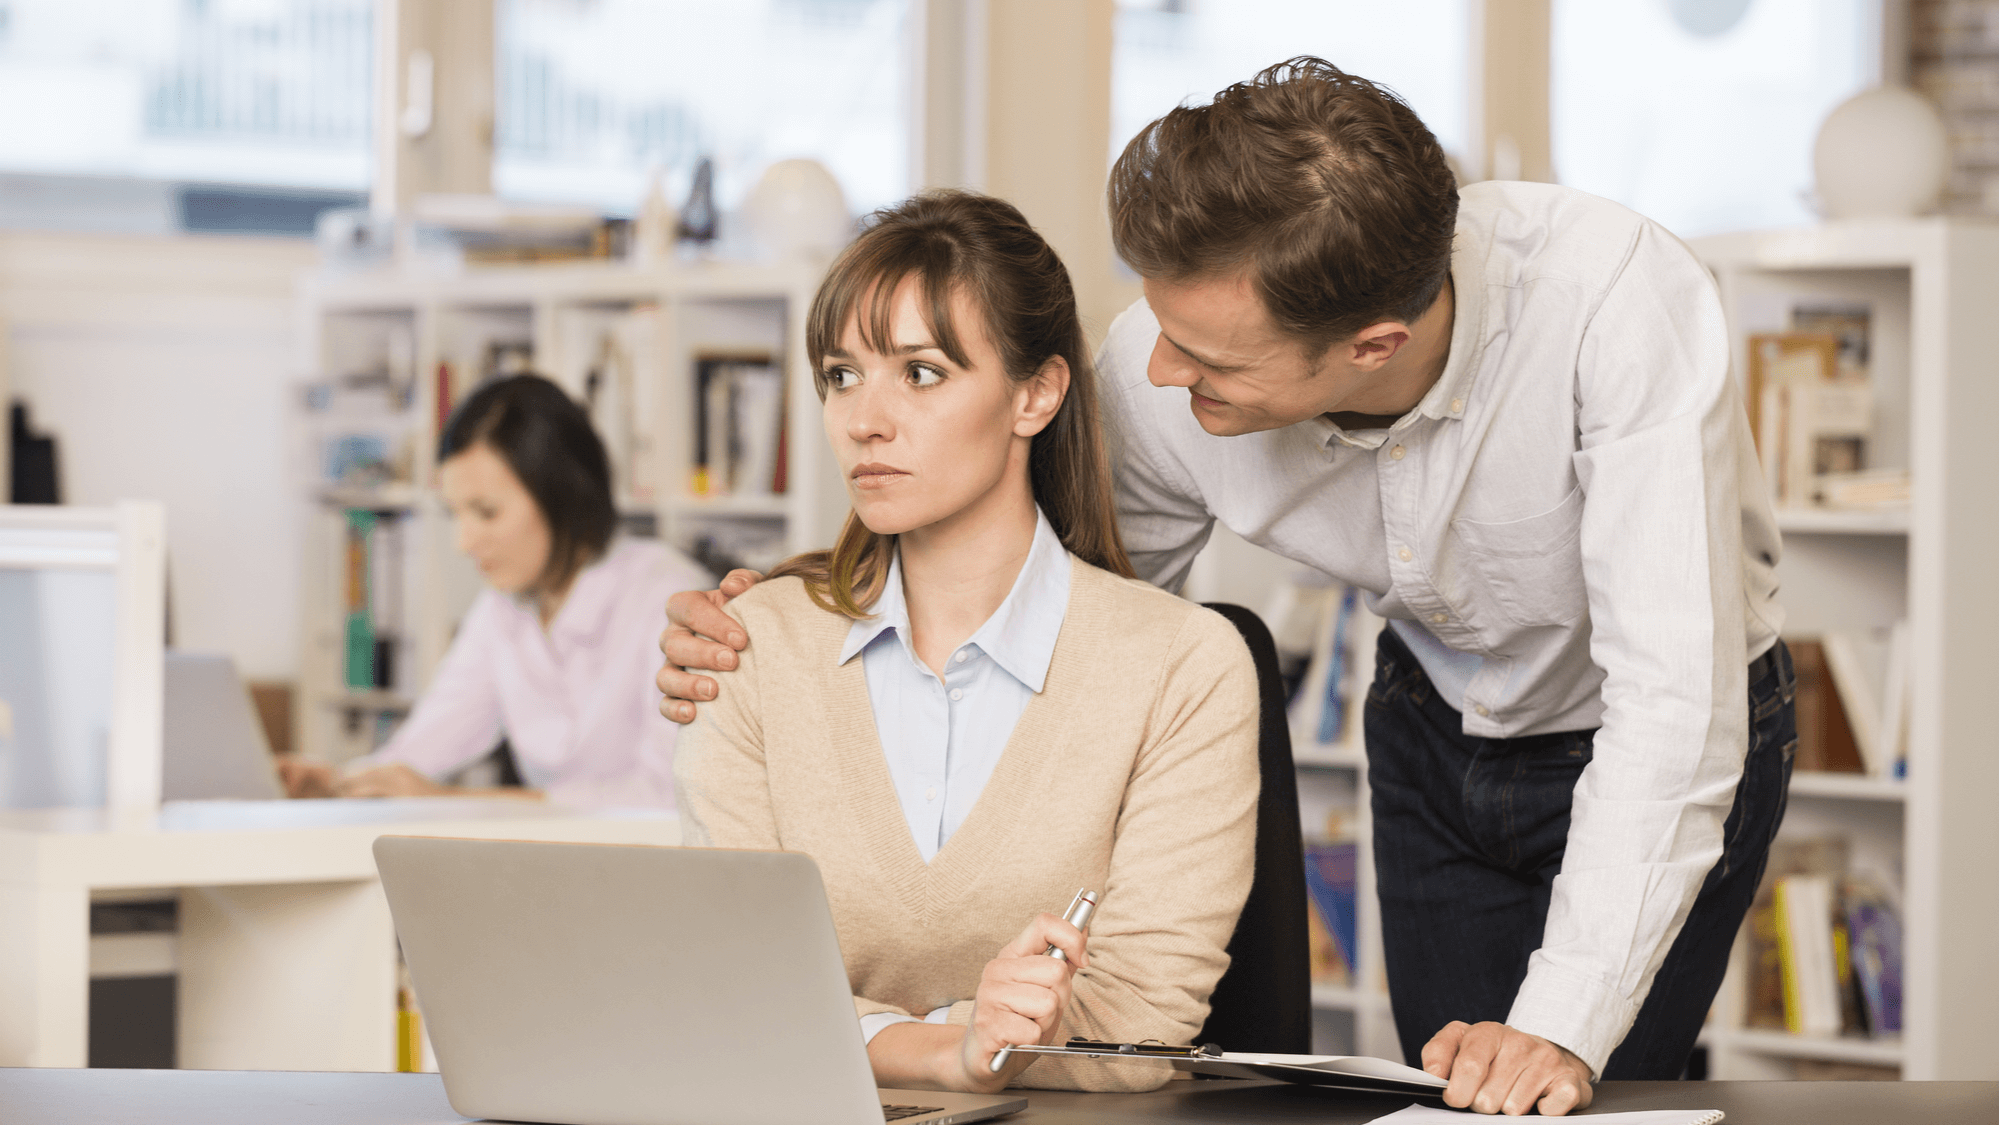 10 Steps To Take If You've Been A Victim of Workplace Sexual Harassment